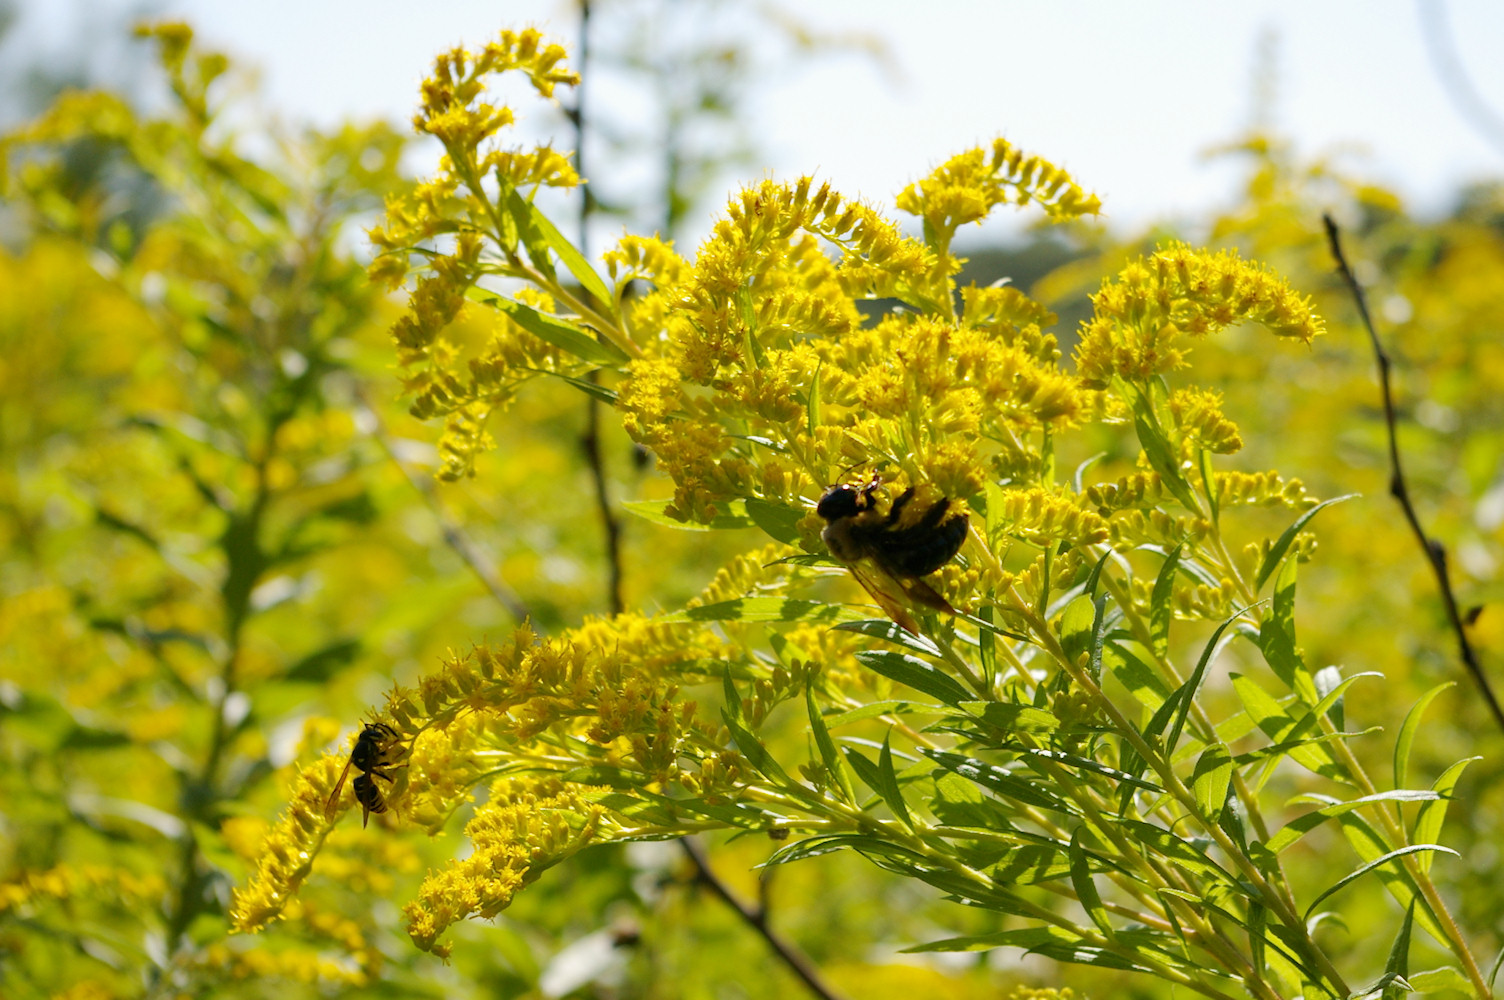 IMGP6430.jpg - Early goldenrod  (Solidago juncea)  with Bumble Bee & Wasp